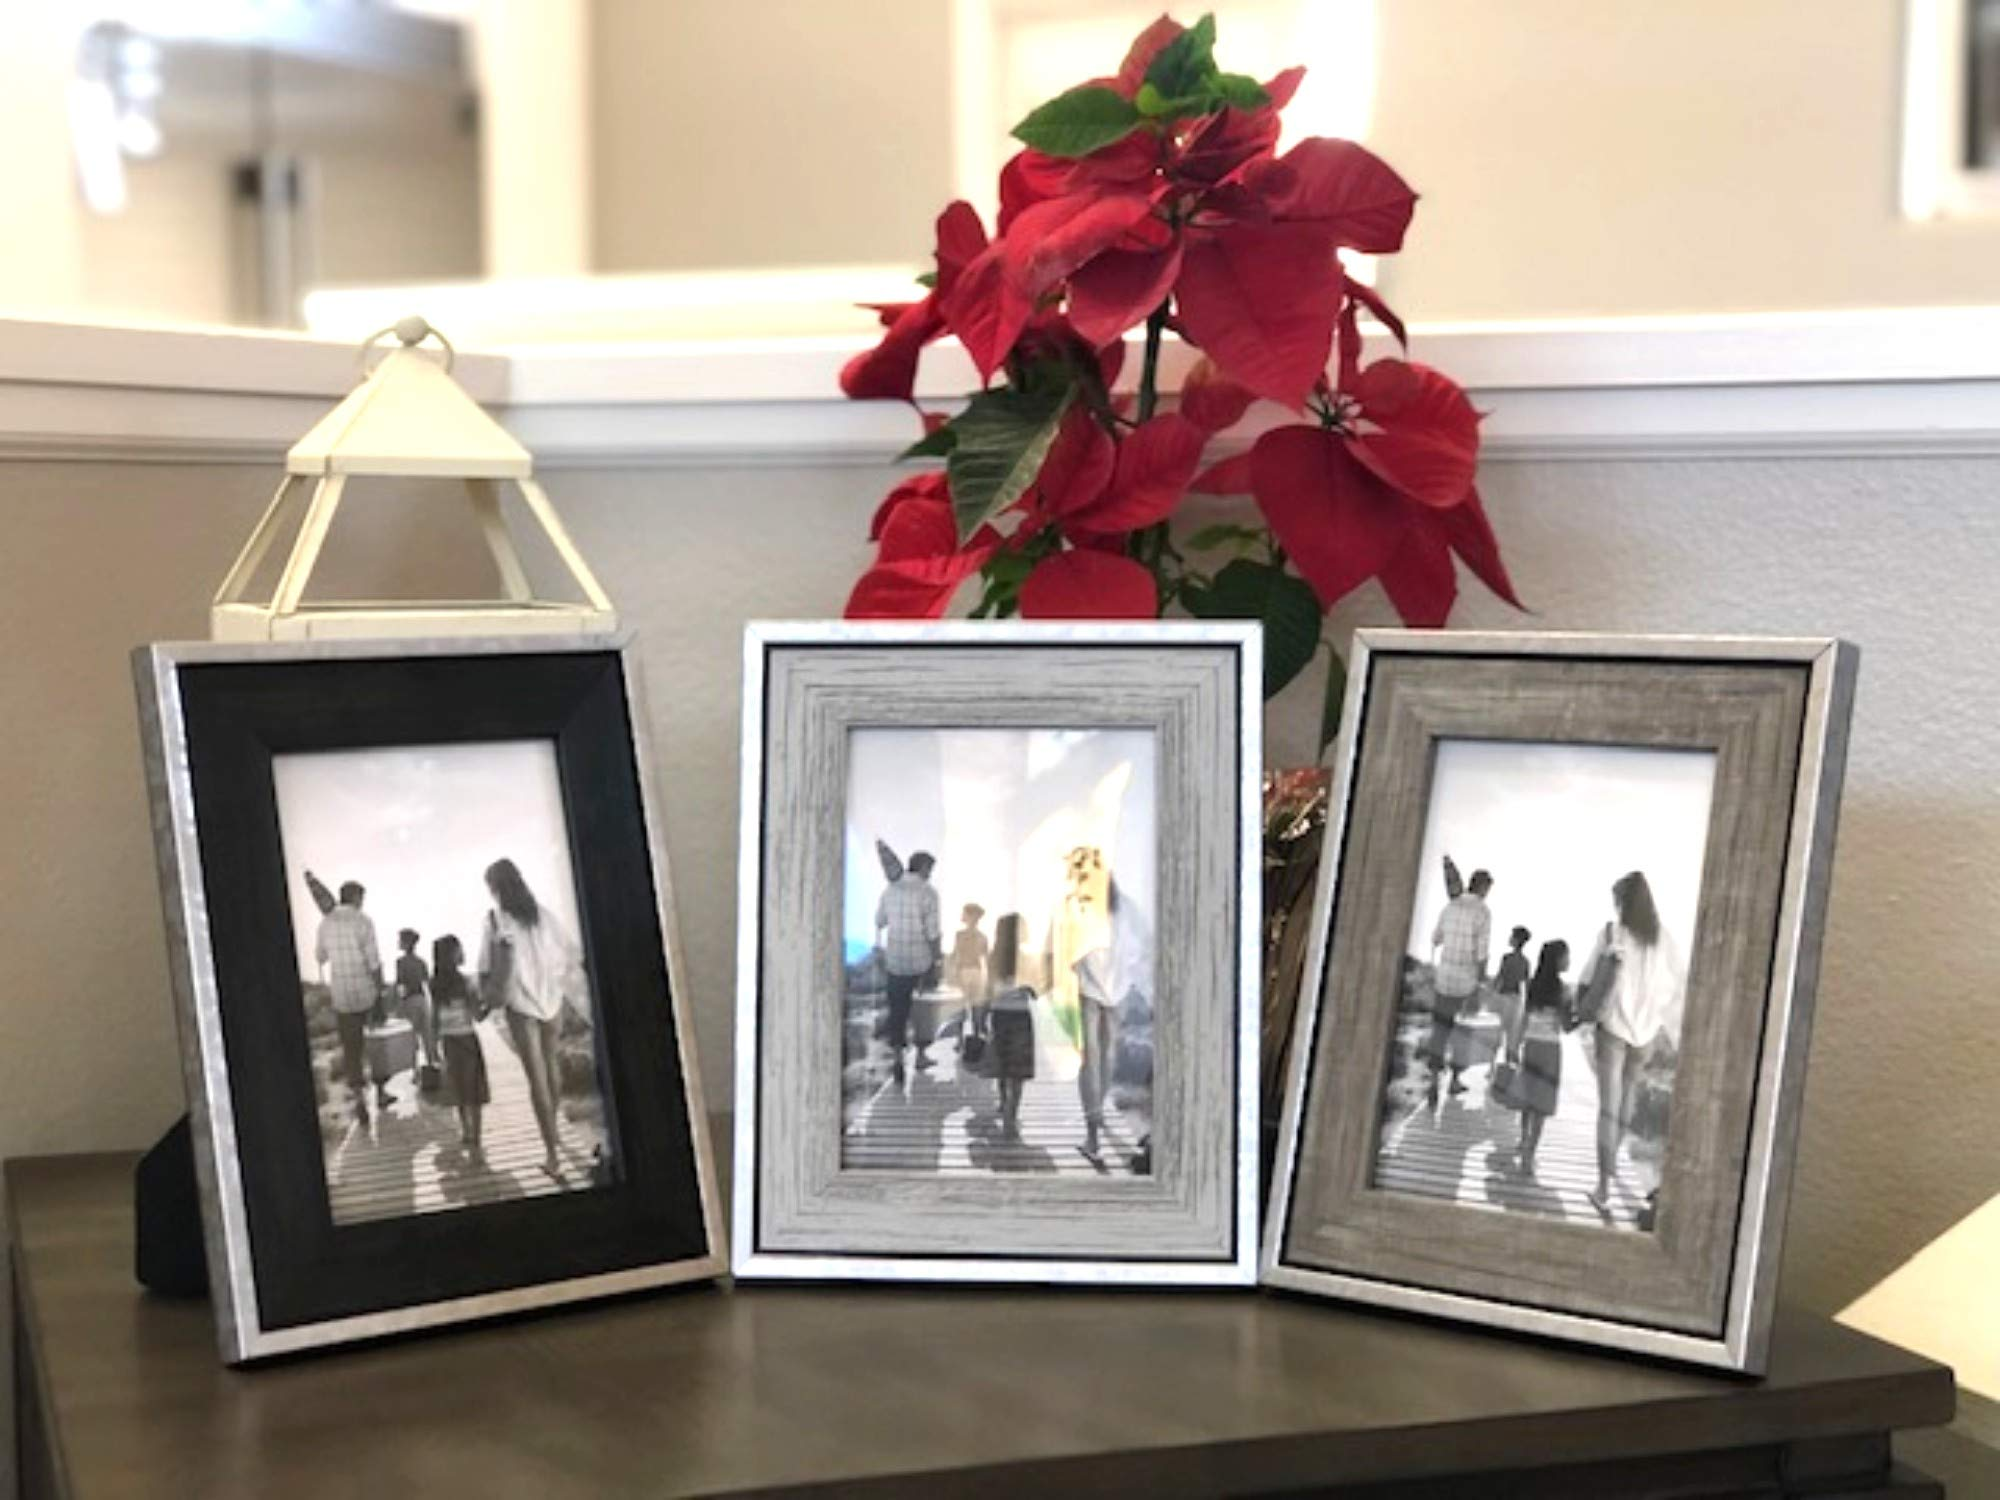 Tasse Verre 5x7 Rustic Frames (3-Pack) - Distressed Farmhouse Industrial Frame - Ready to Hang or Stand - Built-in Easel - Silver Galvanized Metal Look with Wood Insert by Tasse Verre (Image #5)